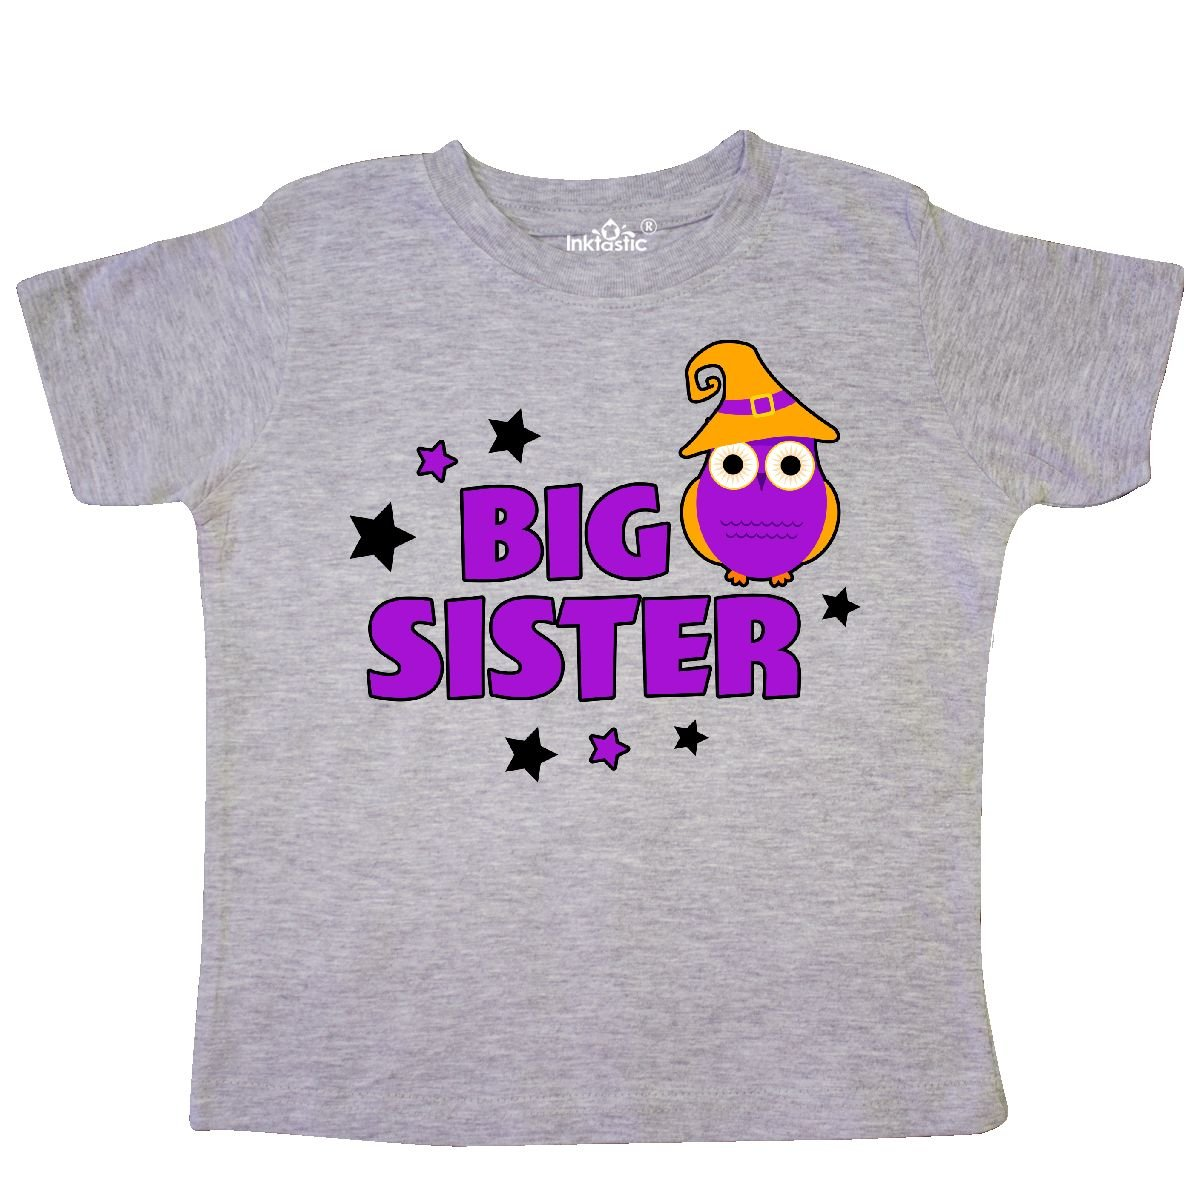 inktastic Halloween Big Sister with Owl and Stars Toddler T-Shirt